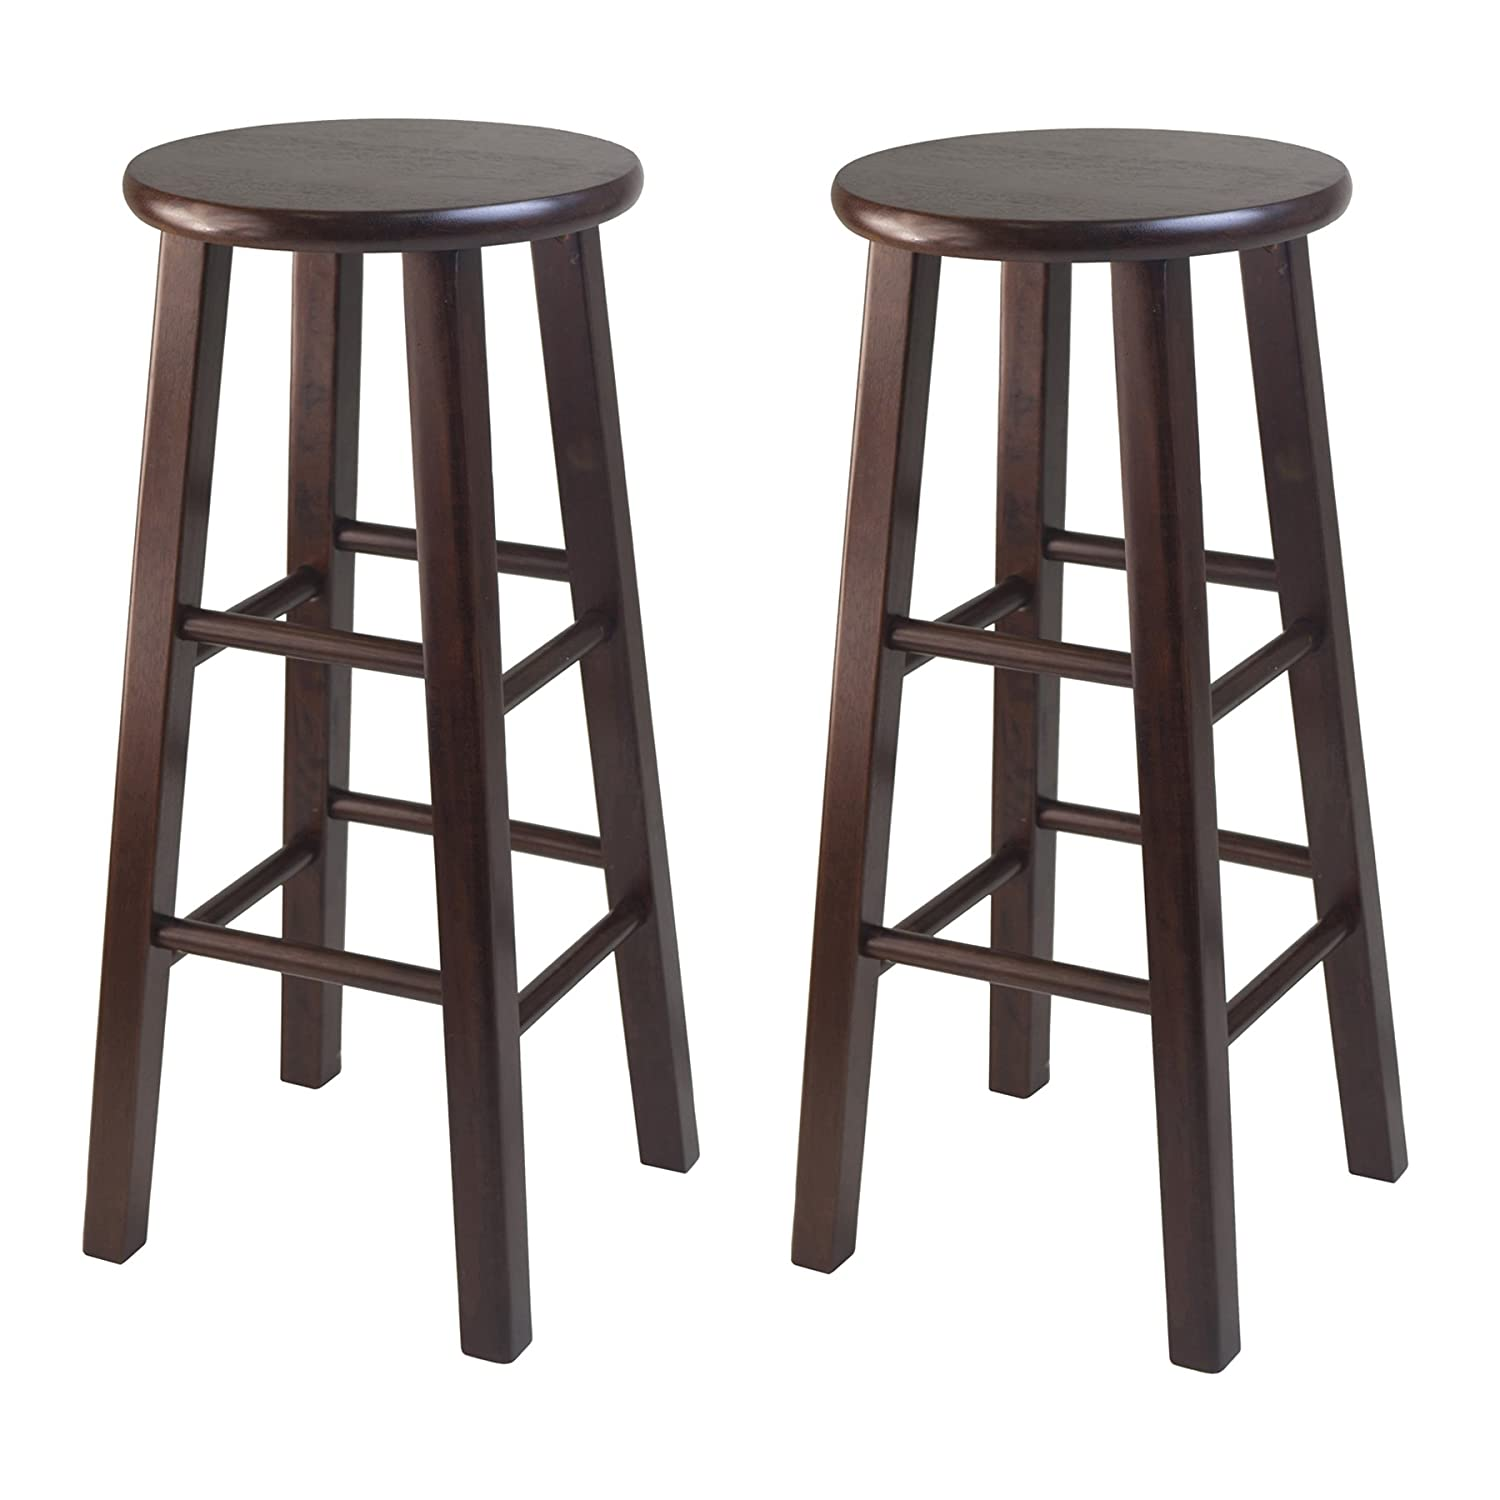 Amazon Winsome Inch Square Leg Bar Stool Black Set of 2